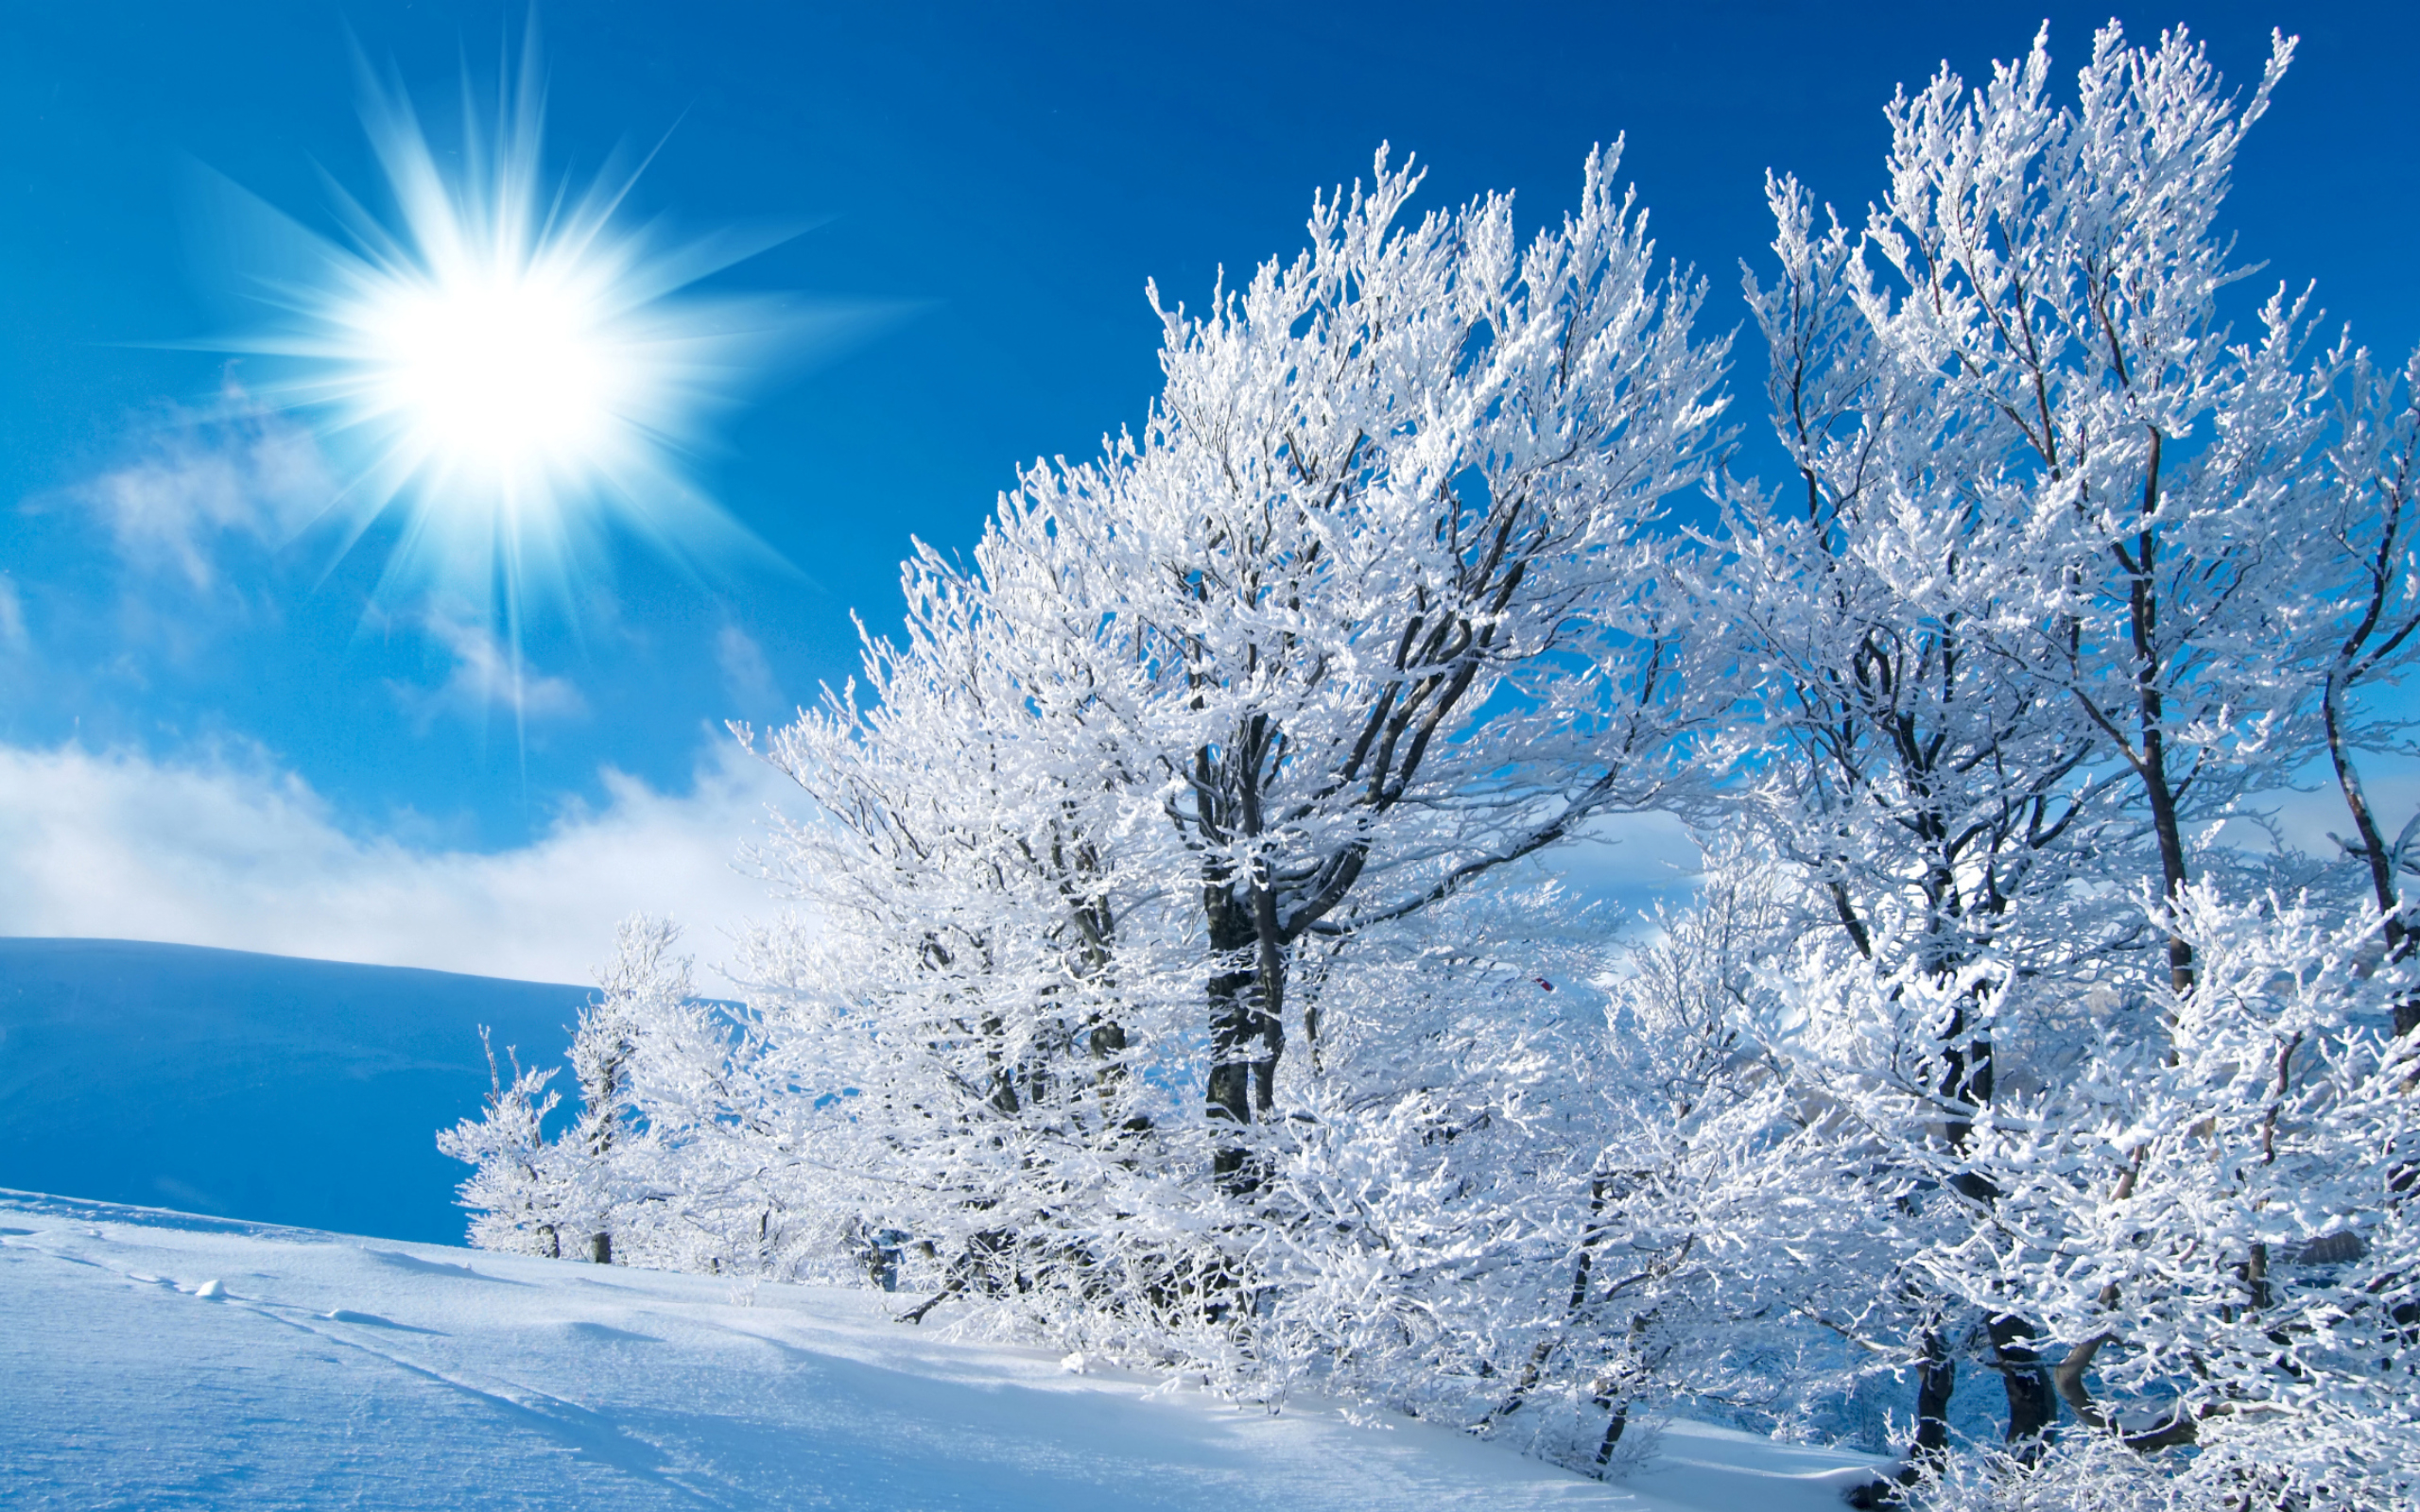 Nice-best-winter-wallpapers-hd-free-for-desktop